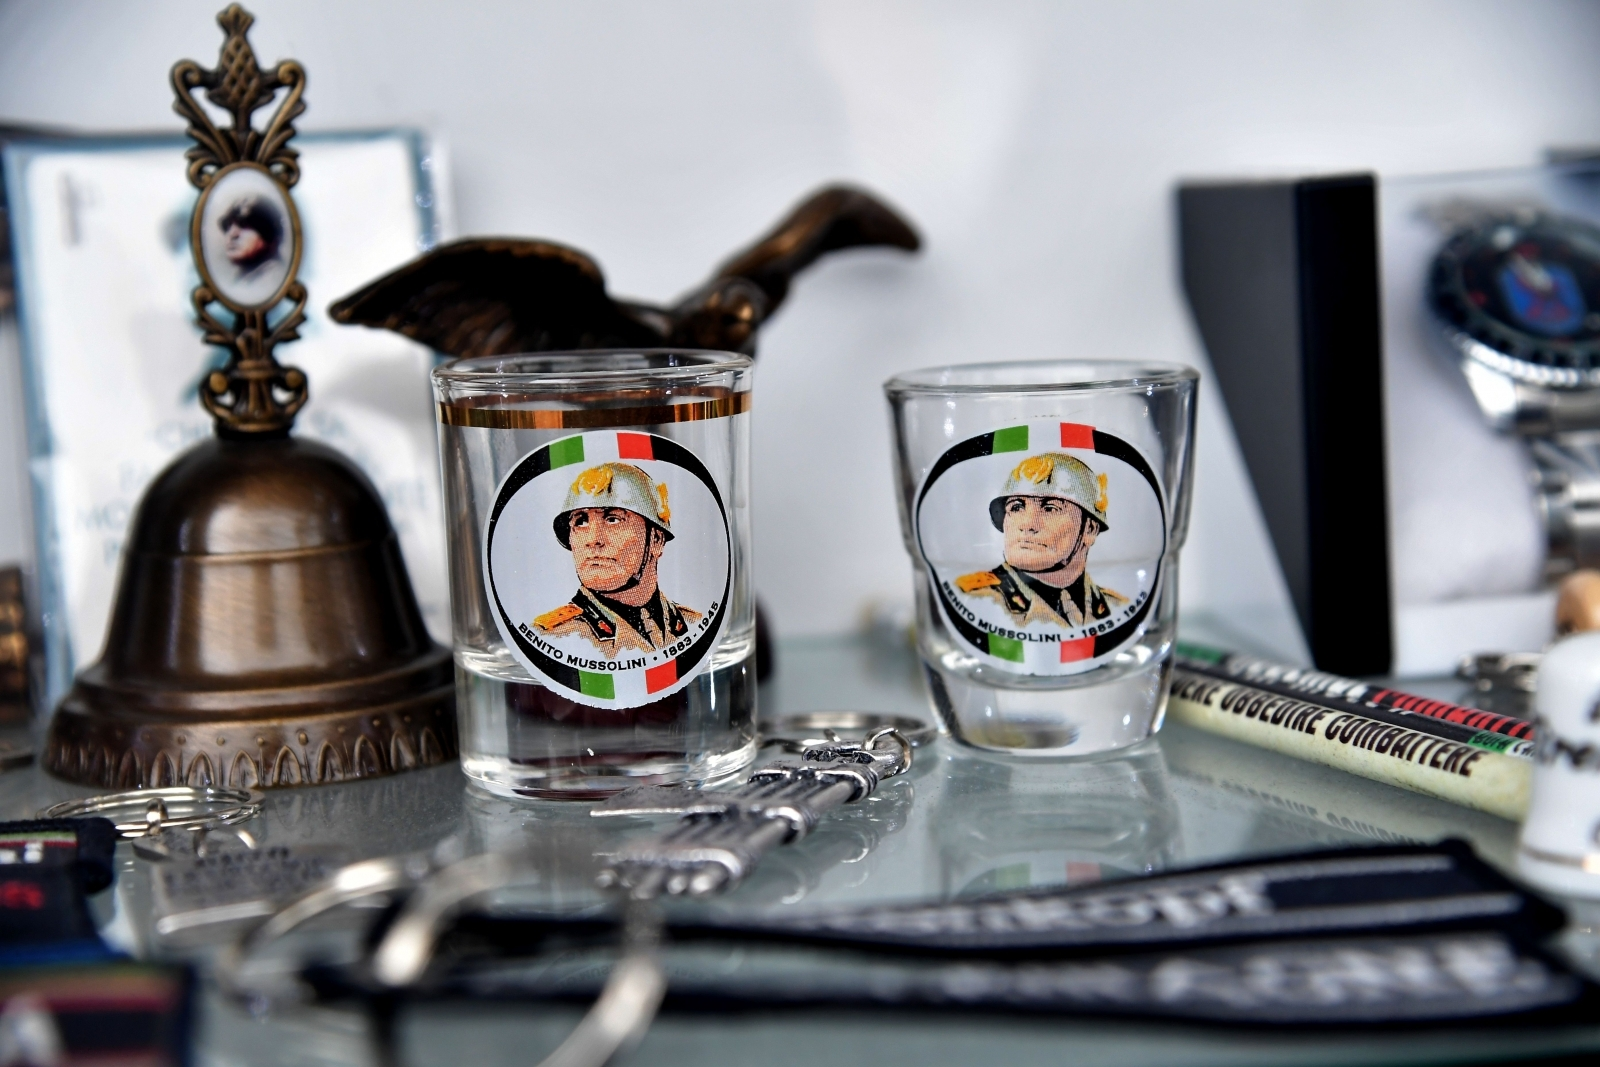 Mussolini shot glasses